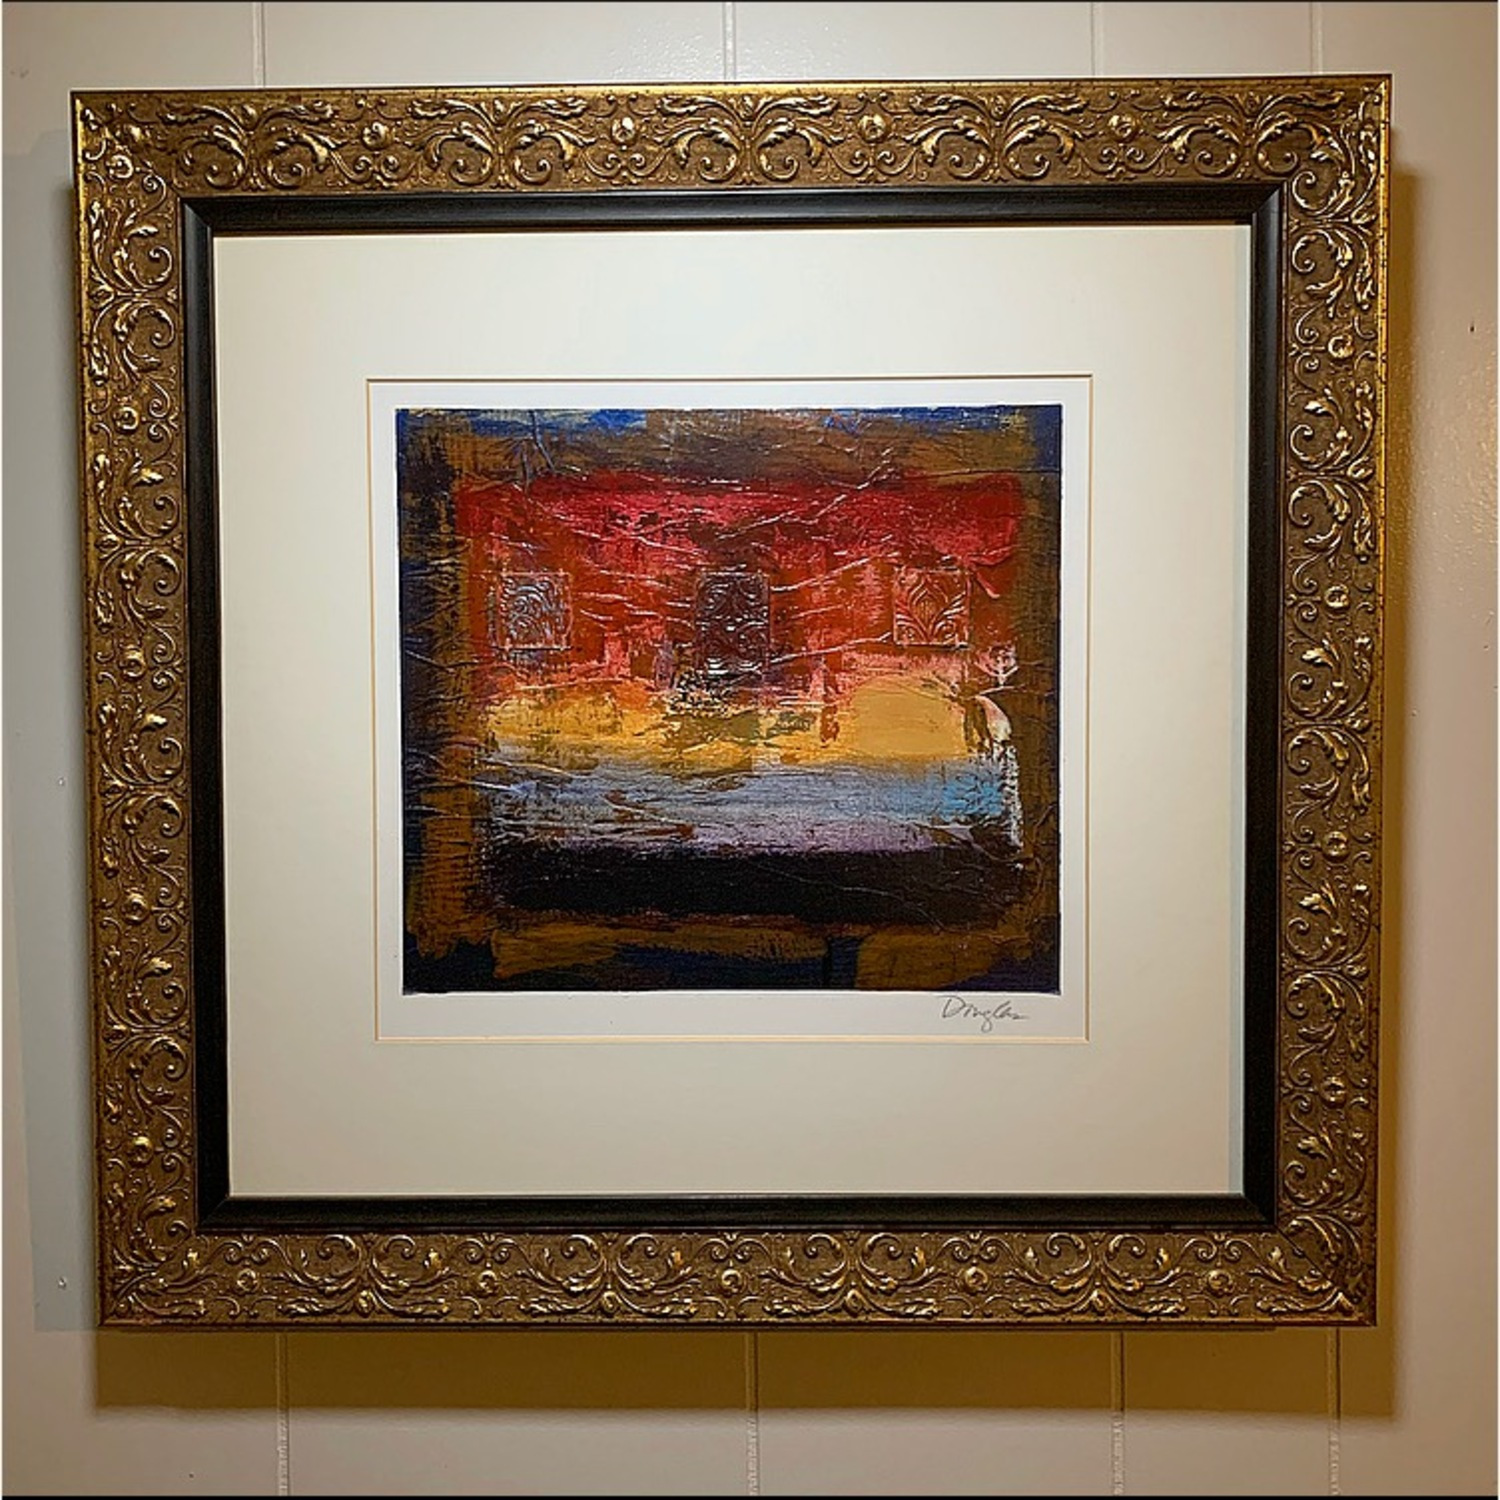 John Douglas Original Oil on Metal Paintings - image-6